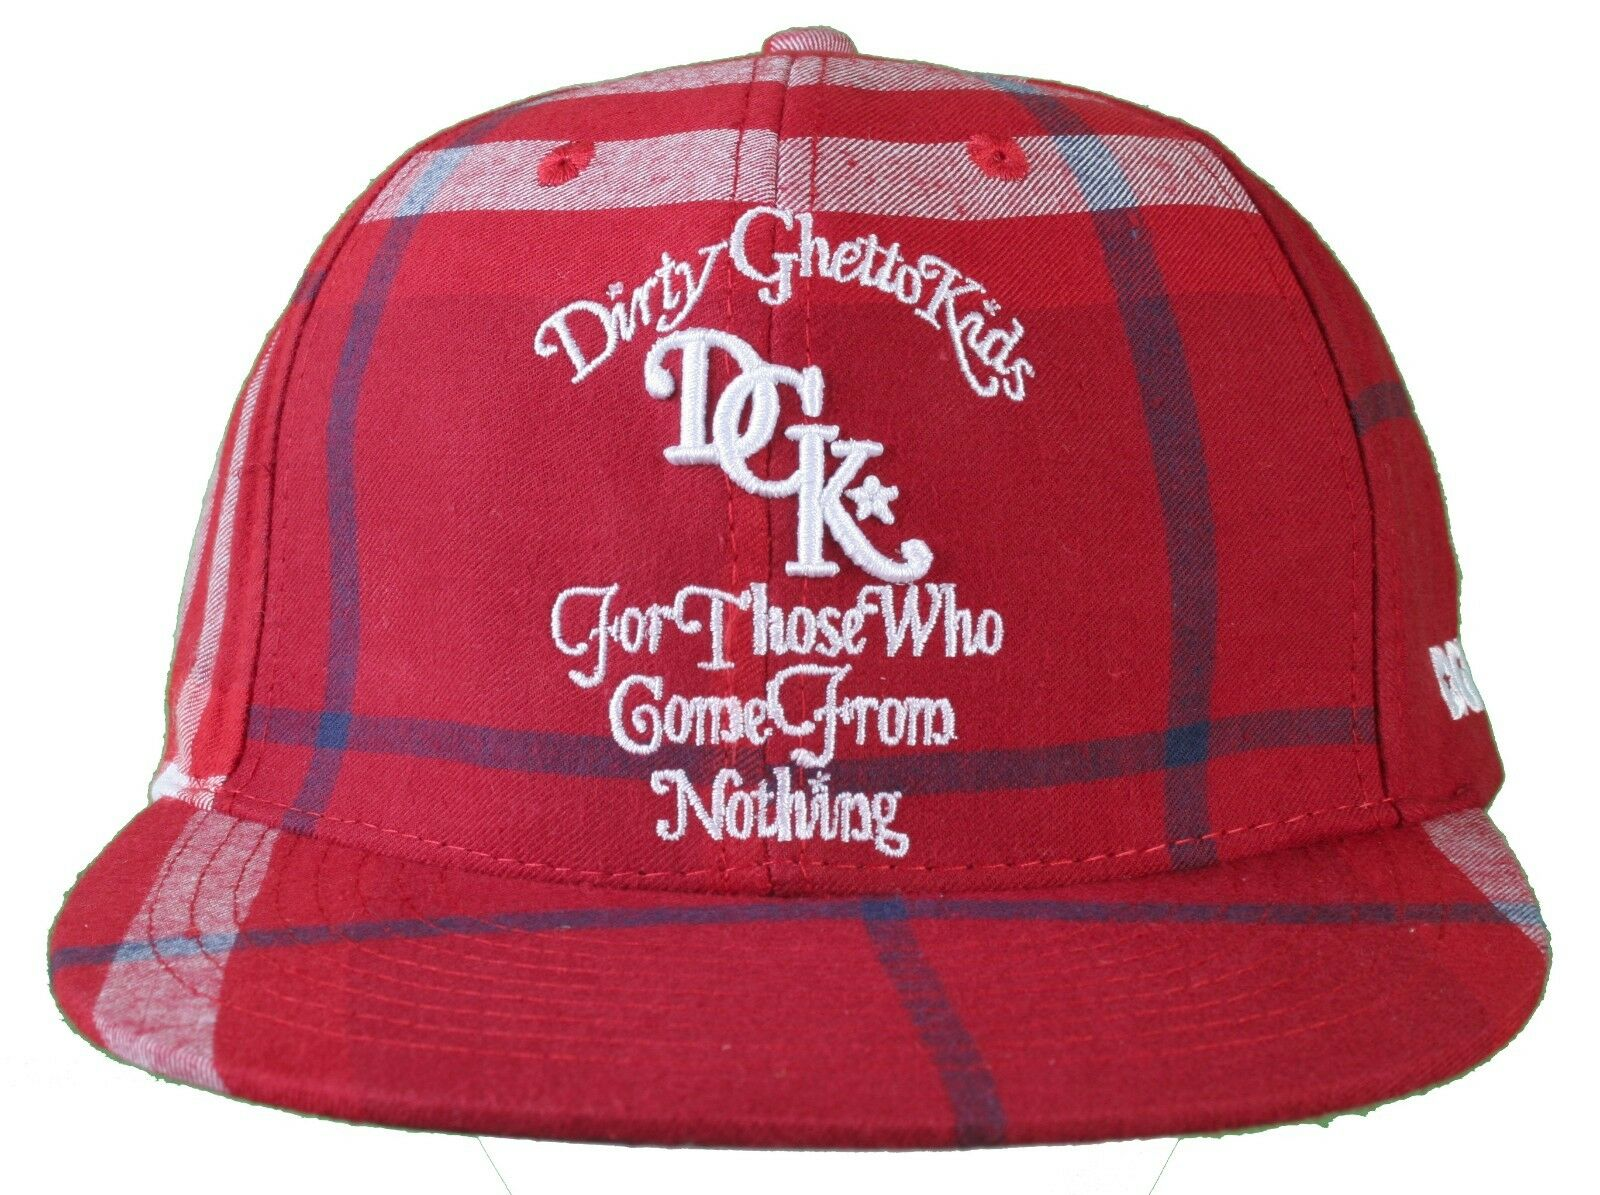 DGK Burgundy Red Plaid From For Those Who Come From Plaid Nothing Snapback Baseball Hat Cap ac86b0